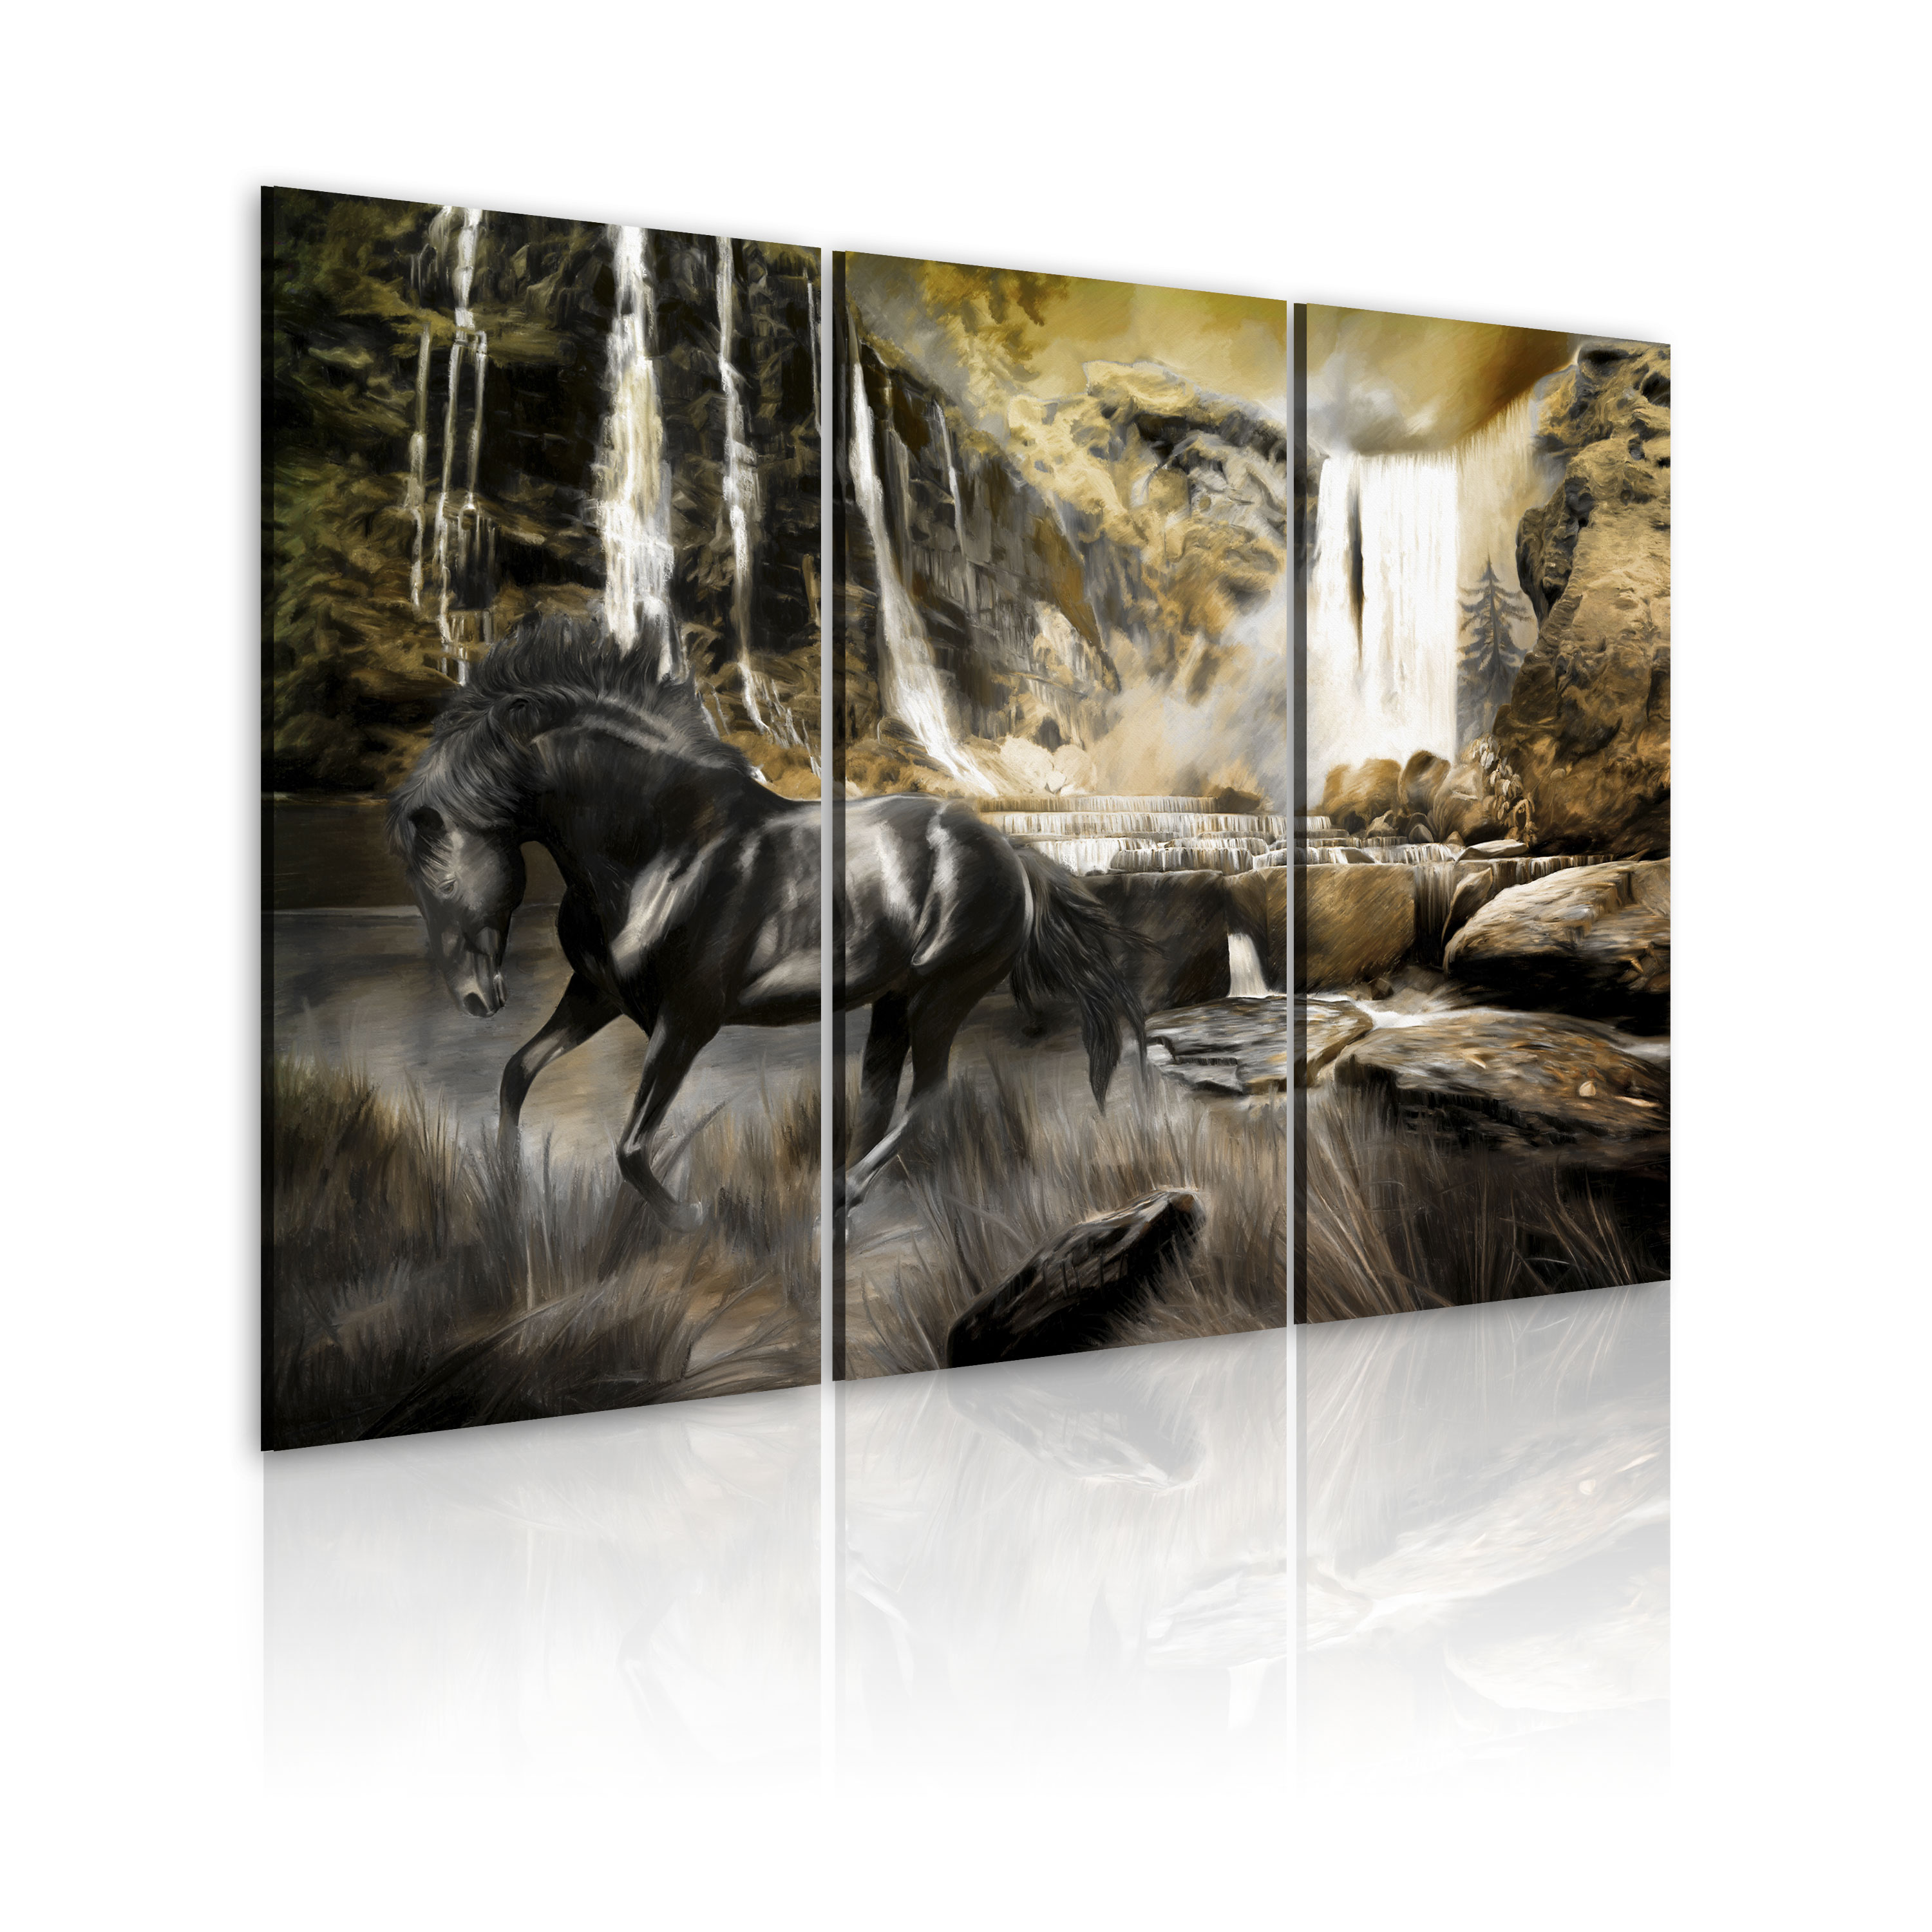 Obraz - Black horse and rocky waterfall 120x80